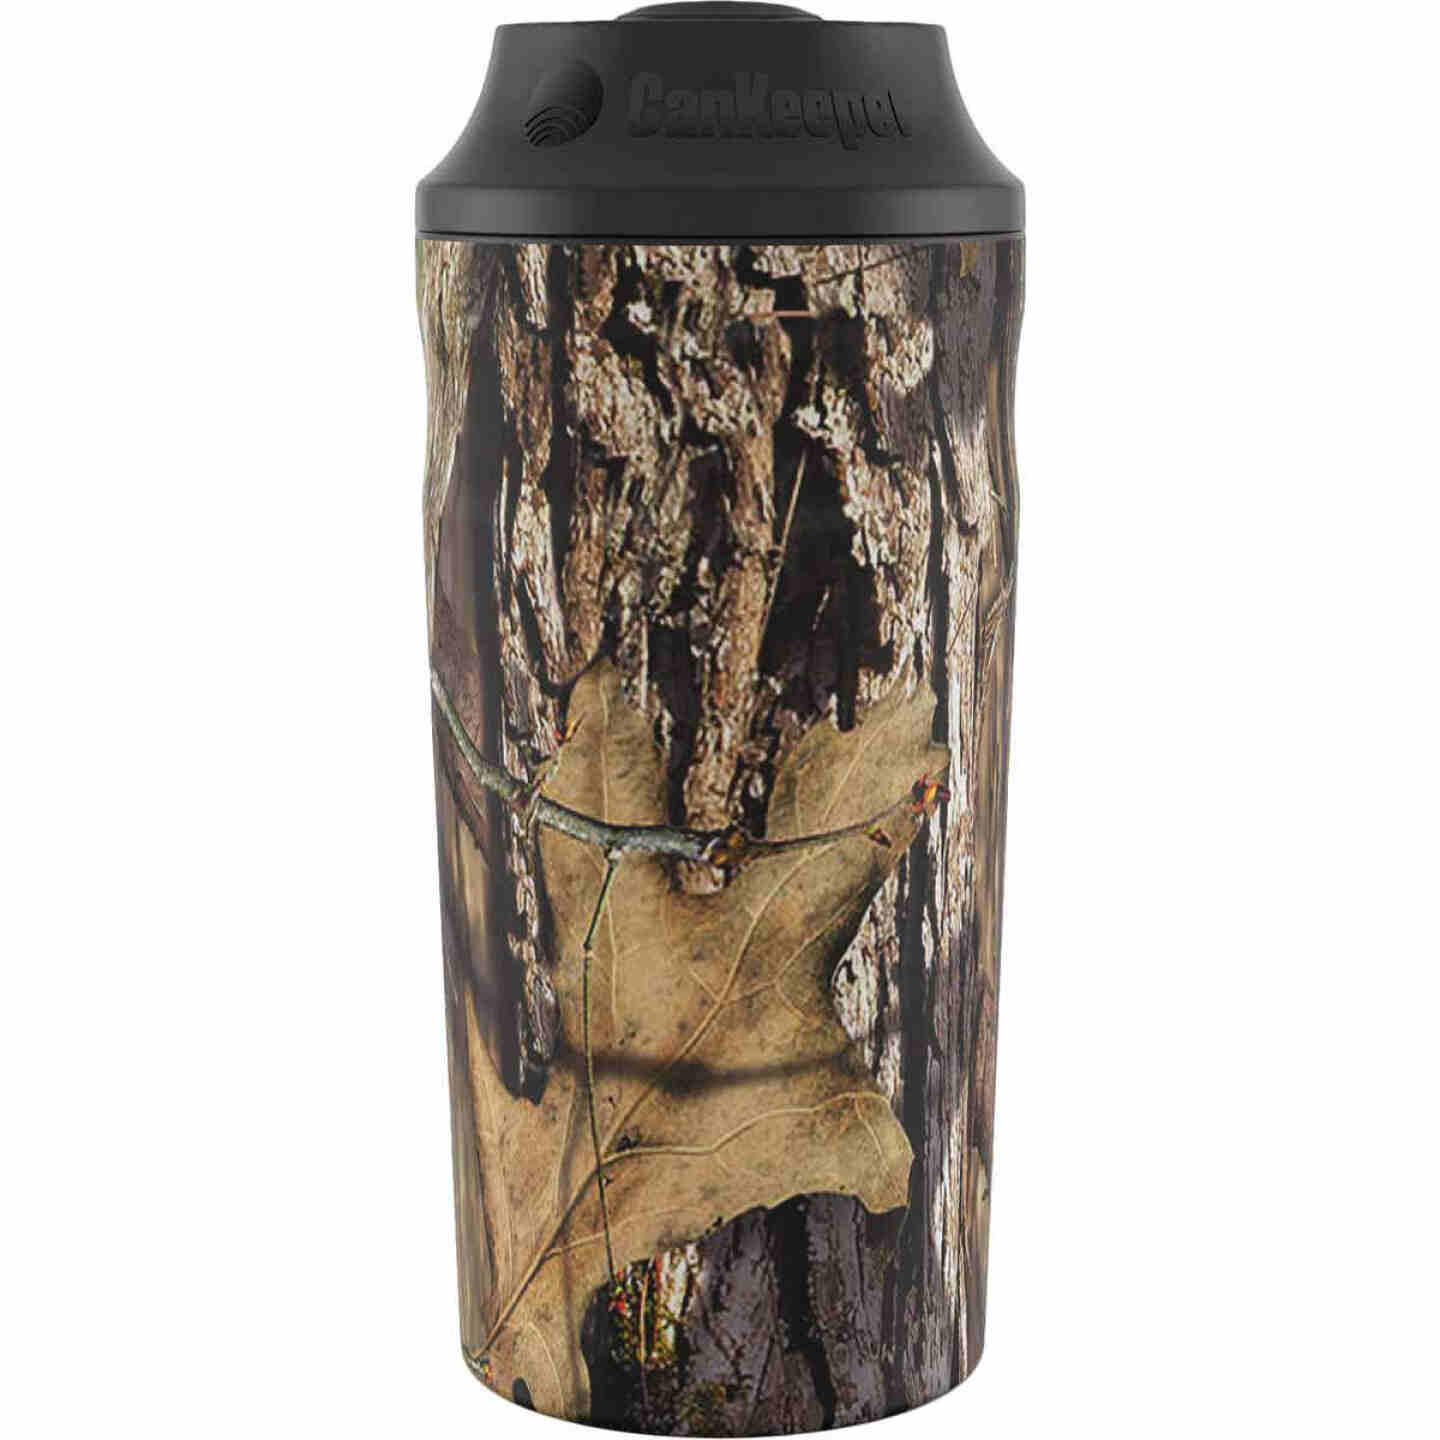 CanKeeper Mossy Oak Can Holder Image 1